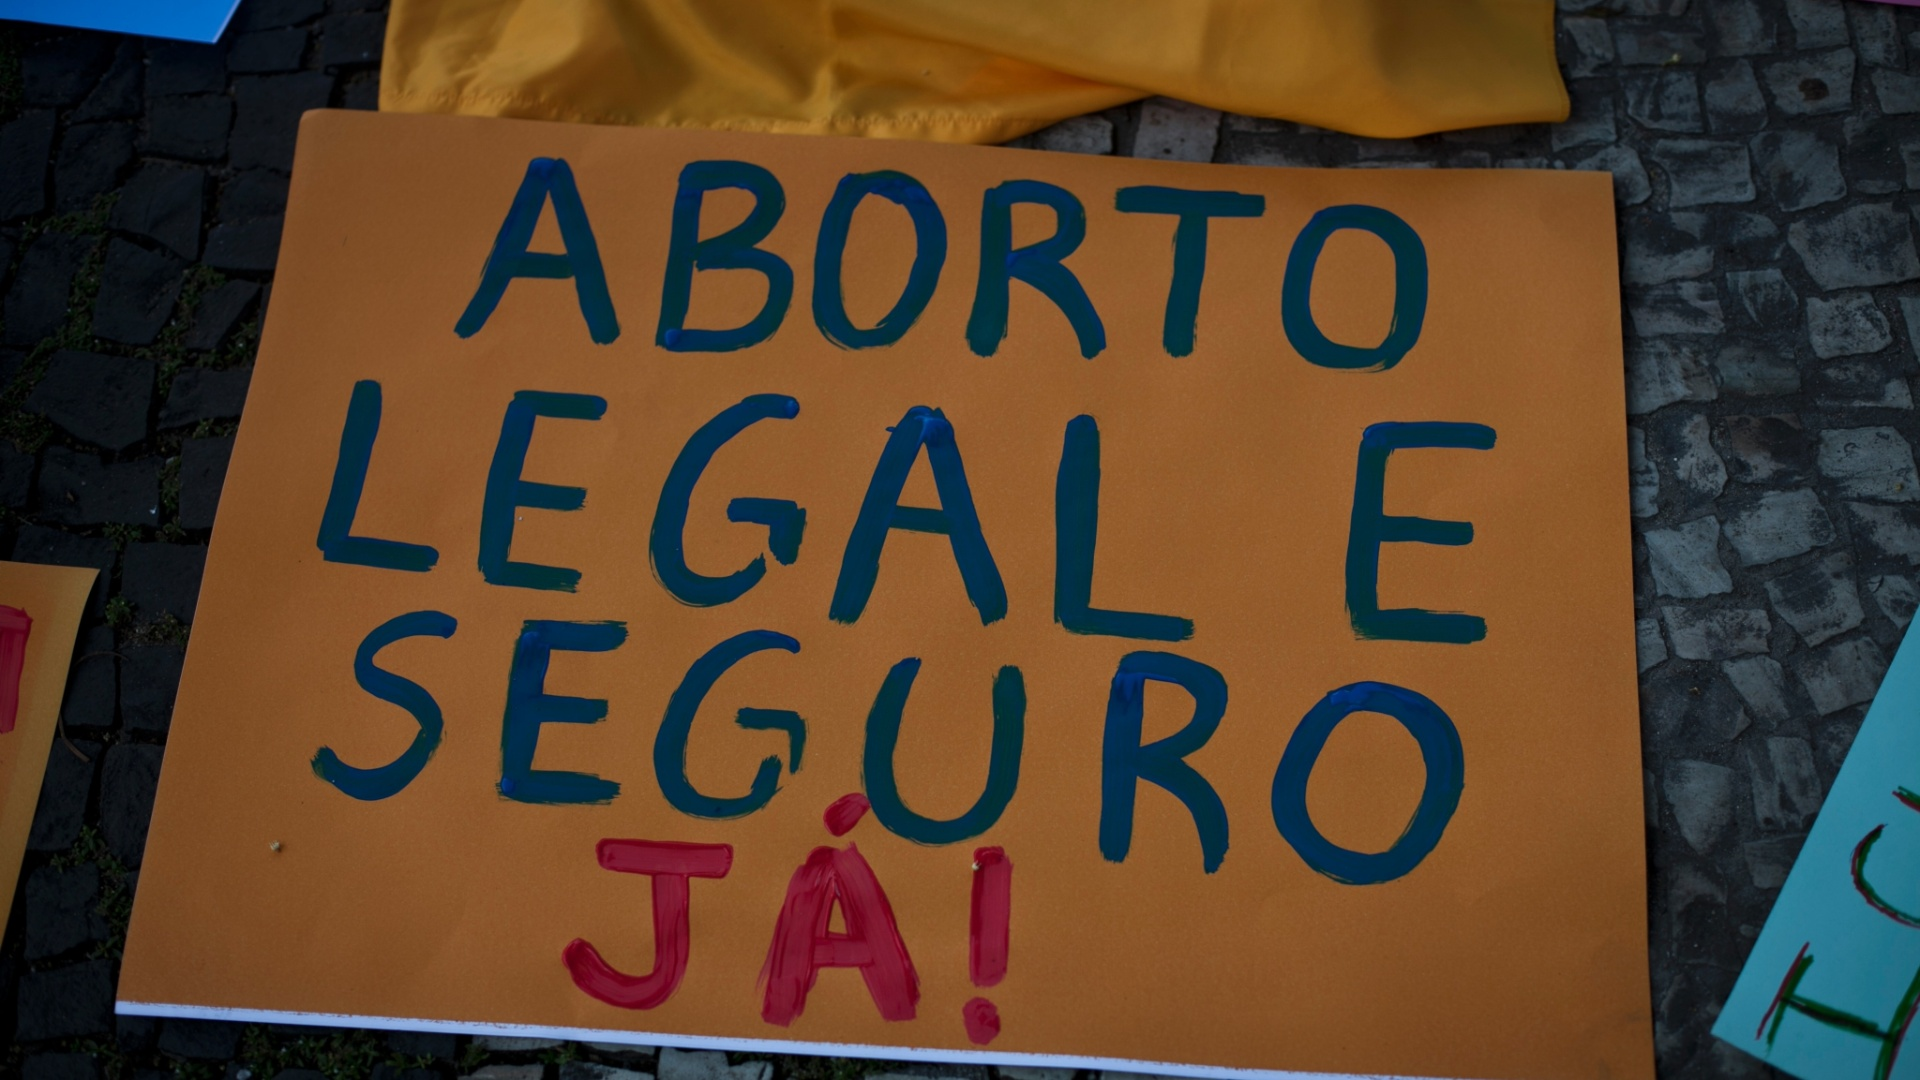  A descriminalizao do aborto foi uma das bandeiras mais recorrentes na Marcha das Vadias pelo Brasil neste sbado (26)